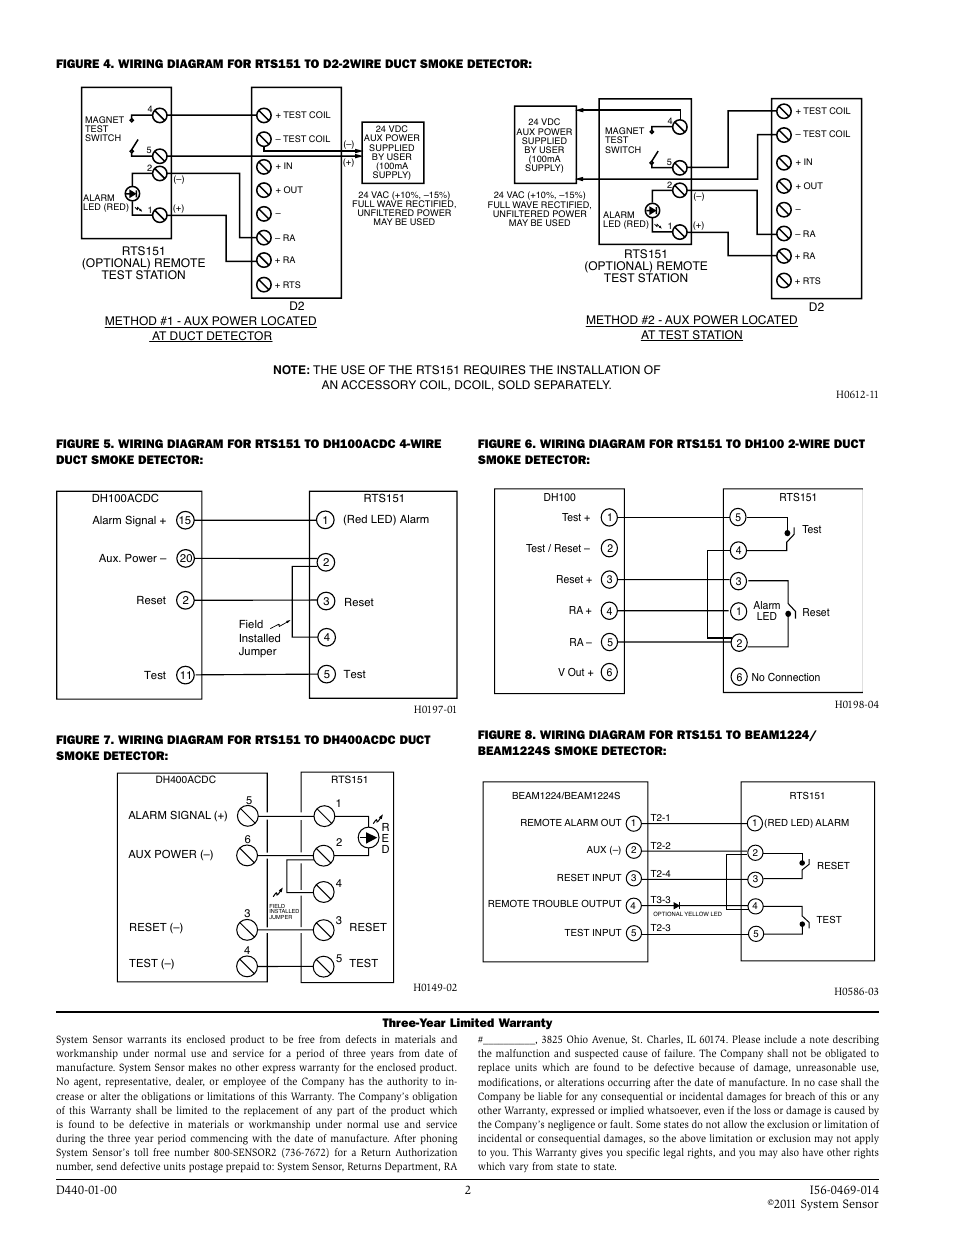 Mahindra Tractor Wiring Diagram Alfa Romeo Gt Diagrams Start 156 Electrical Rh Neckcream Co